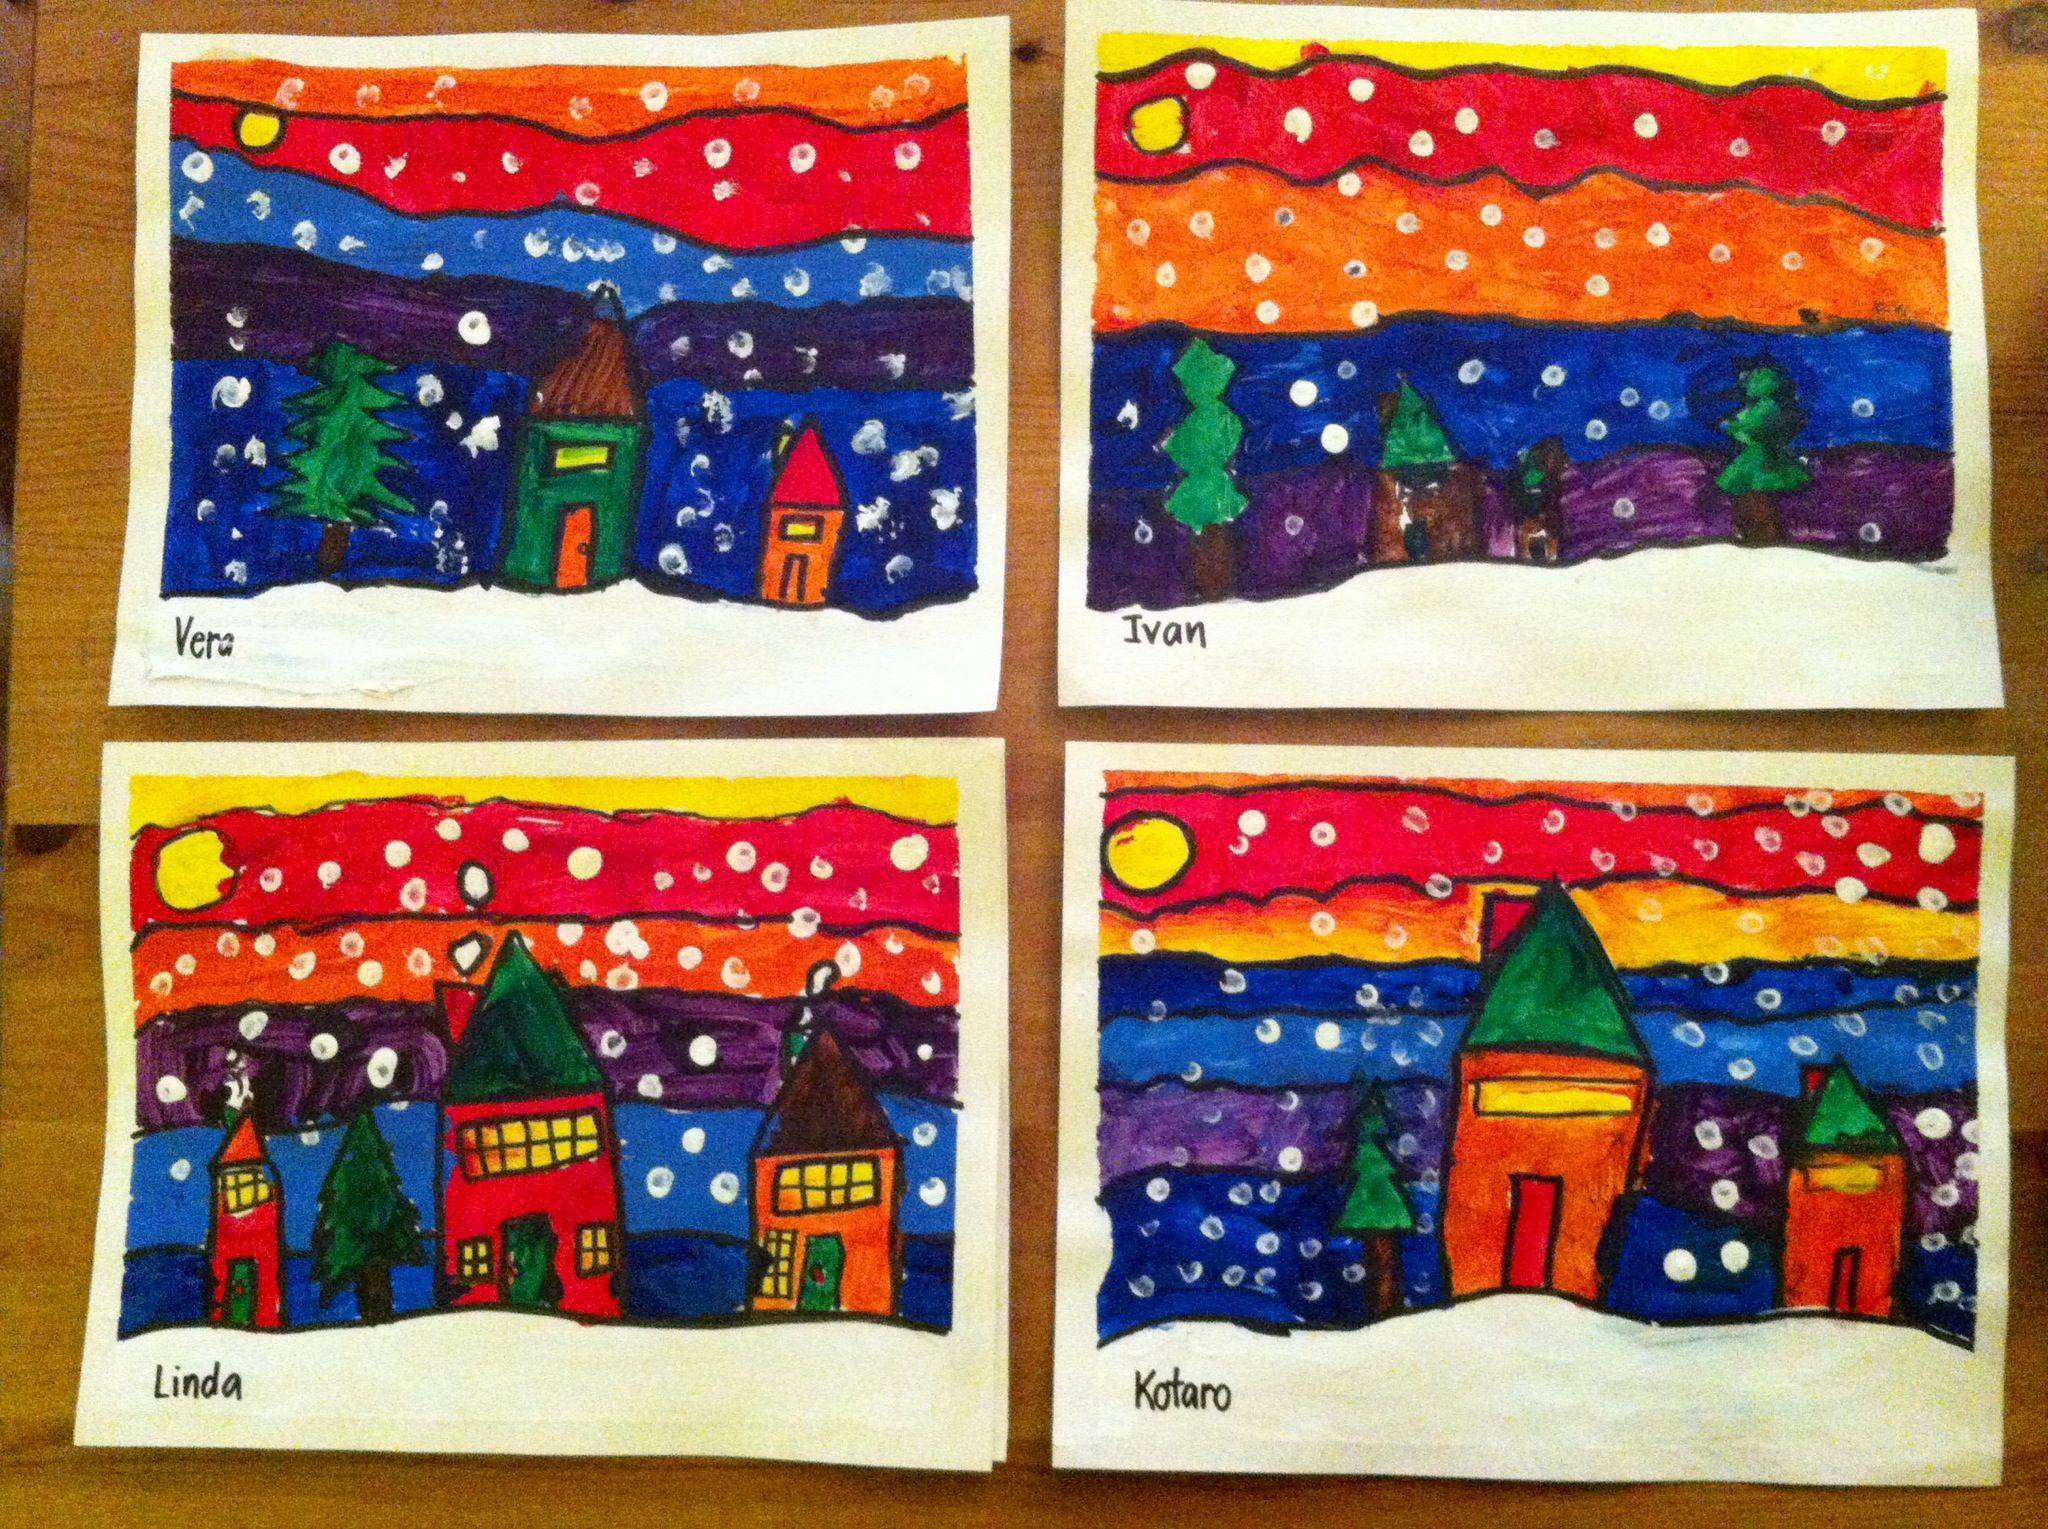 Kindergarten And Grade 1 Art In The Style Of Ted Harrison A 6-step